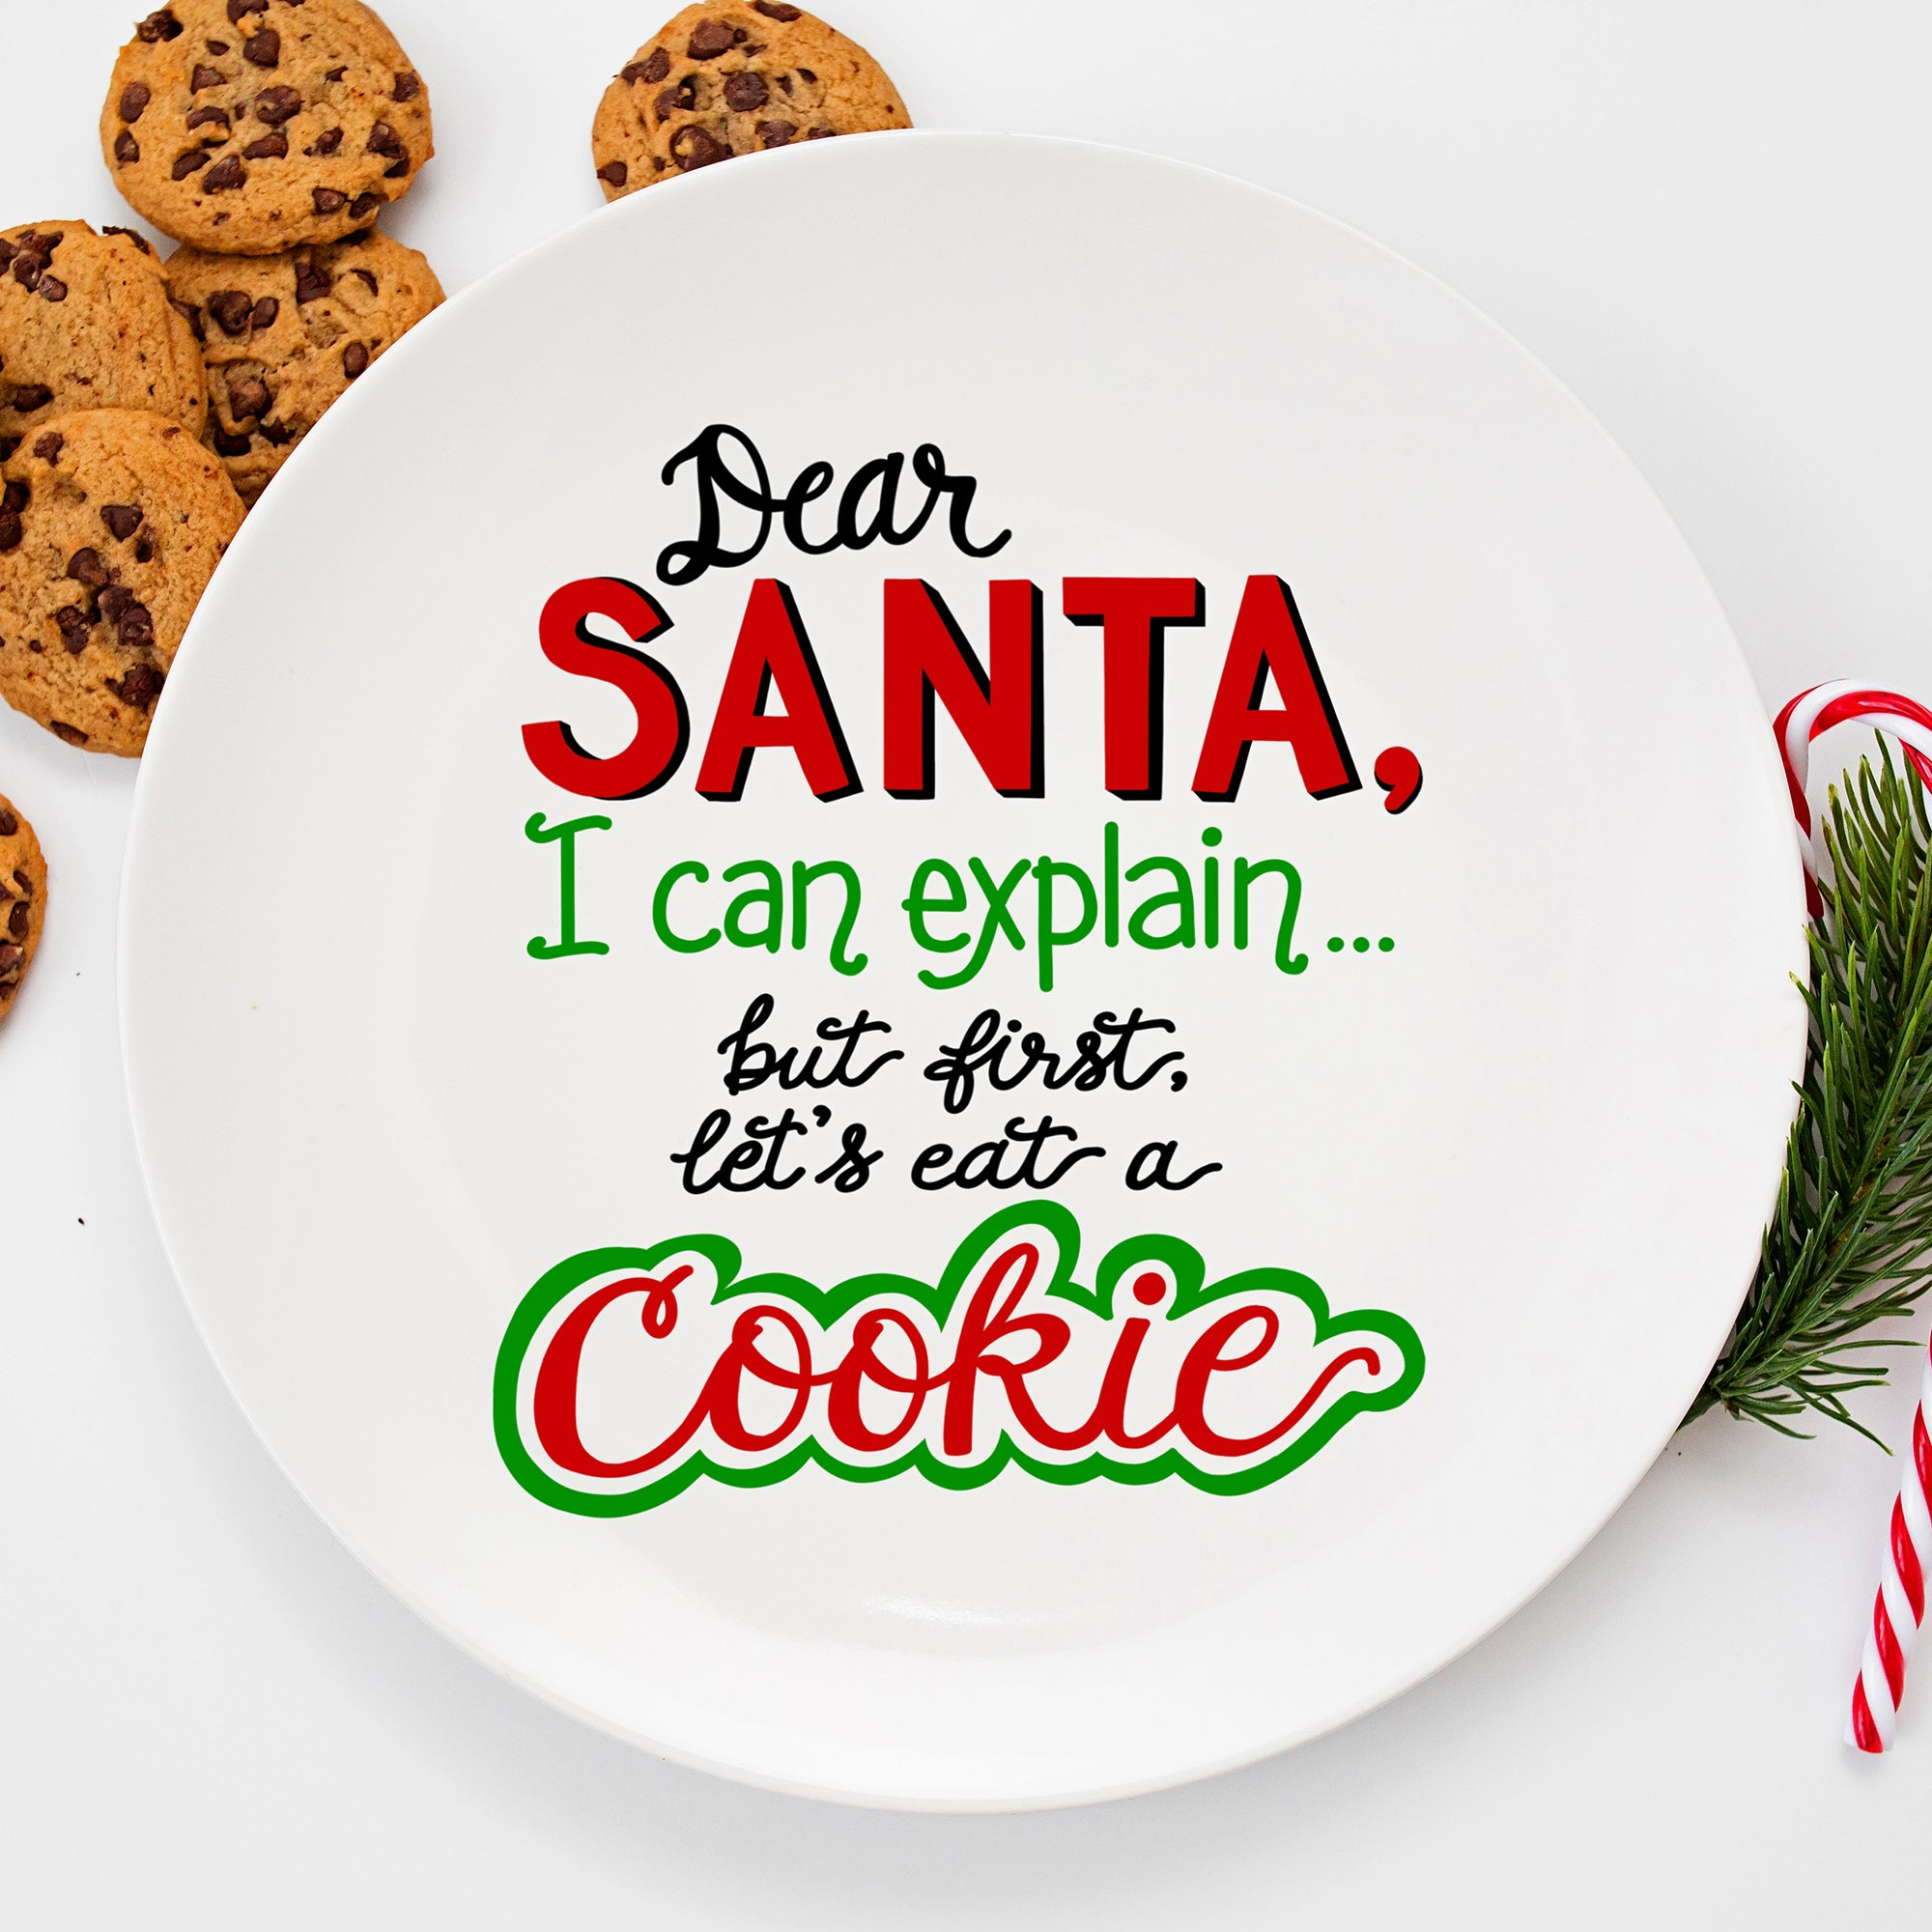 Funny Christmas SVG File, Christmas Shirt SVG, Cookie Plate SVG, I Can Explain SVG, Santa's Cookies SVG Cut File